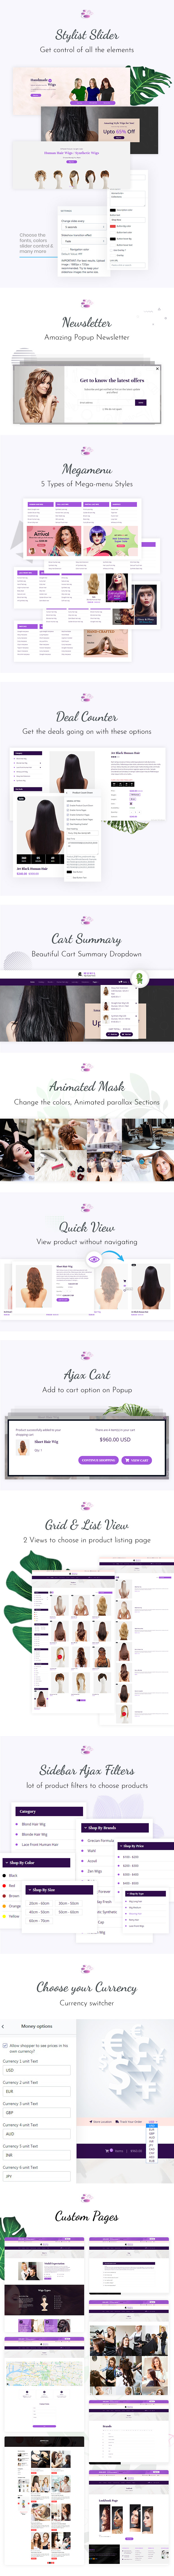 Muhil Hair Salon Extension Hairdresser Shopify Theme By Buddhathemes